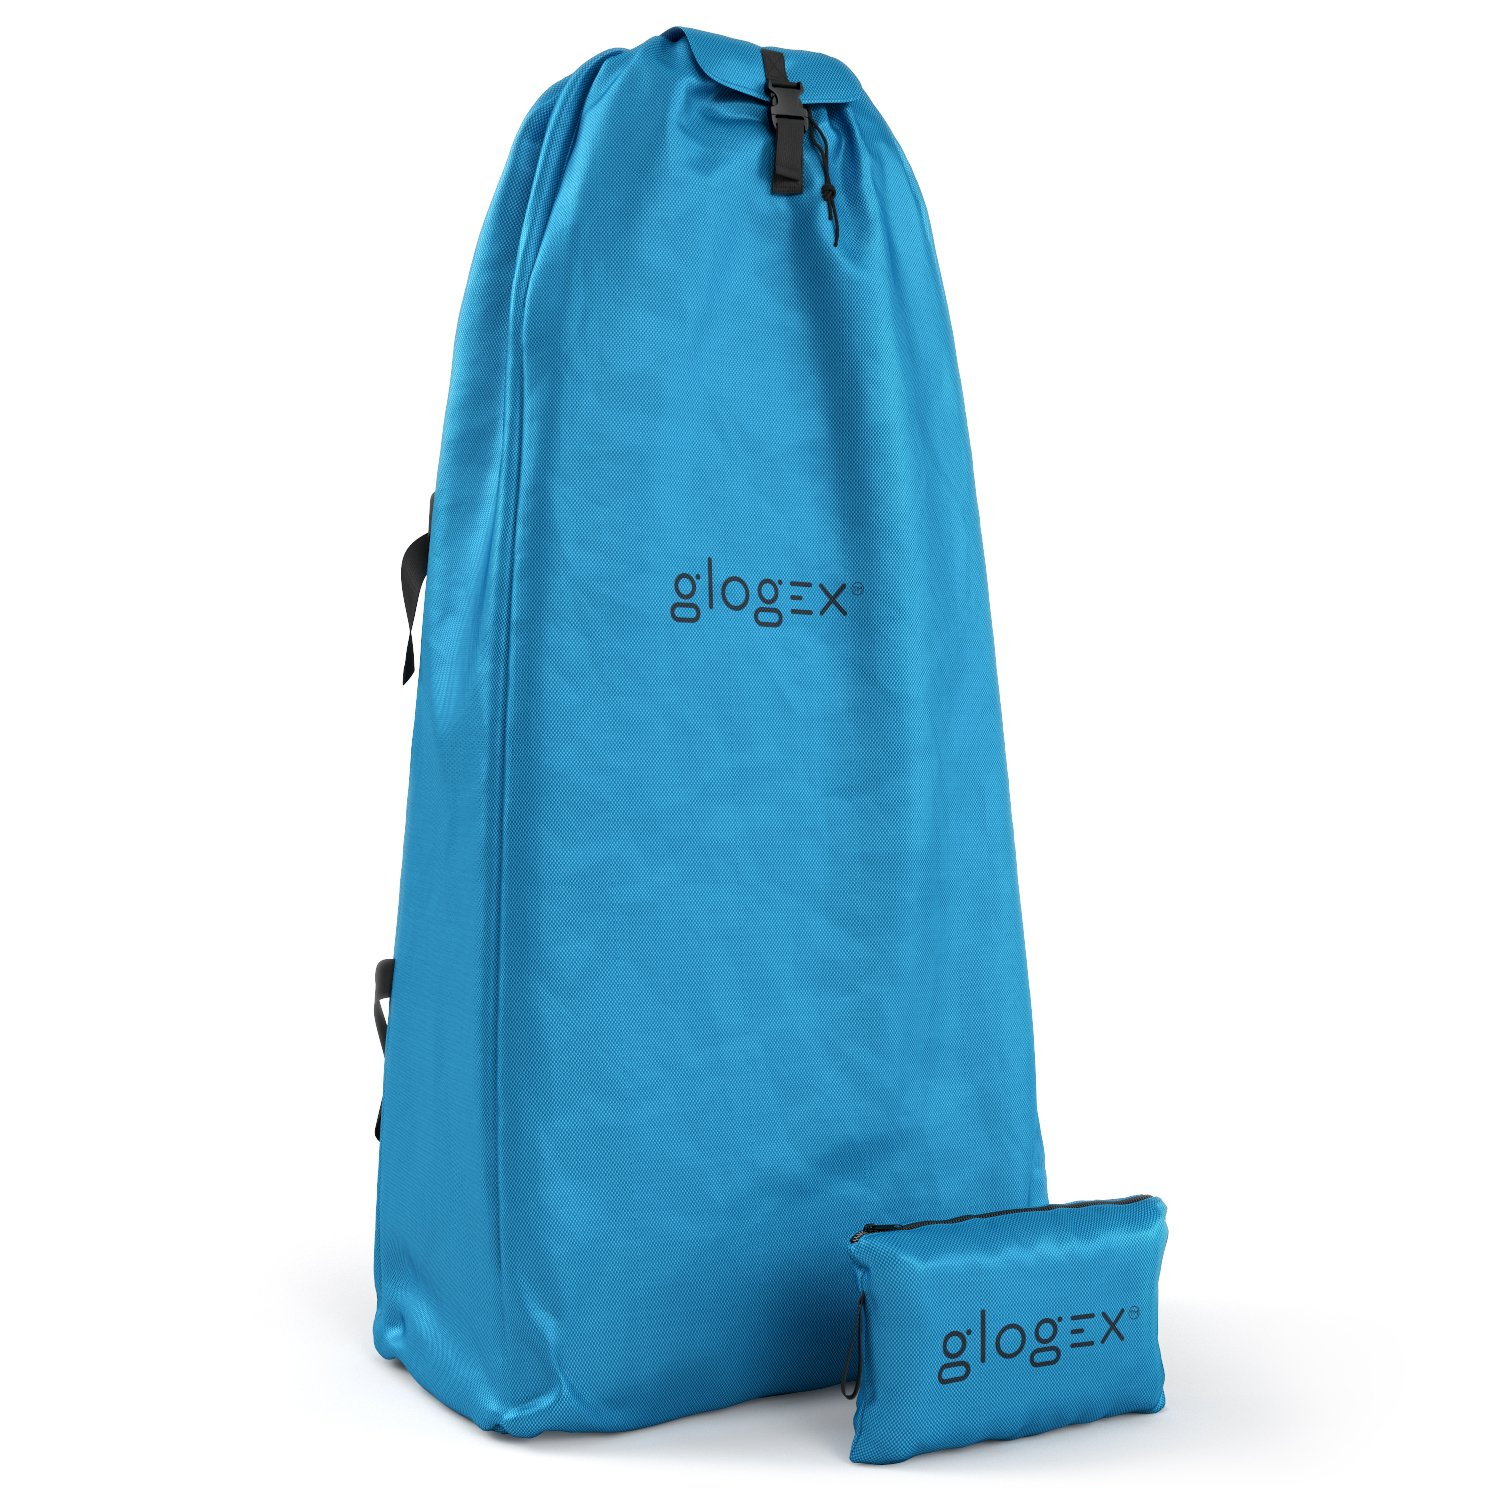 Glogex The Stroller Bag for Airplane – Convenient Stroller Cover for Gate Check